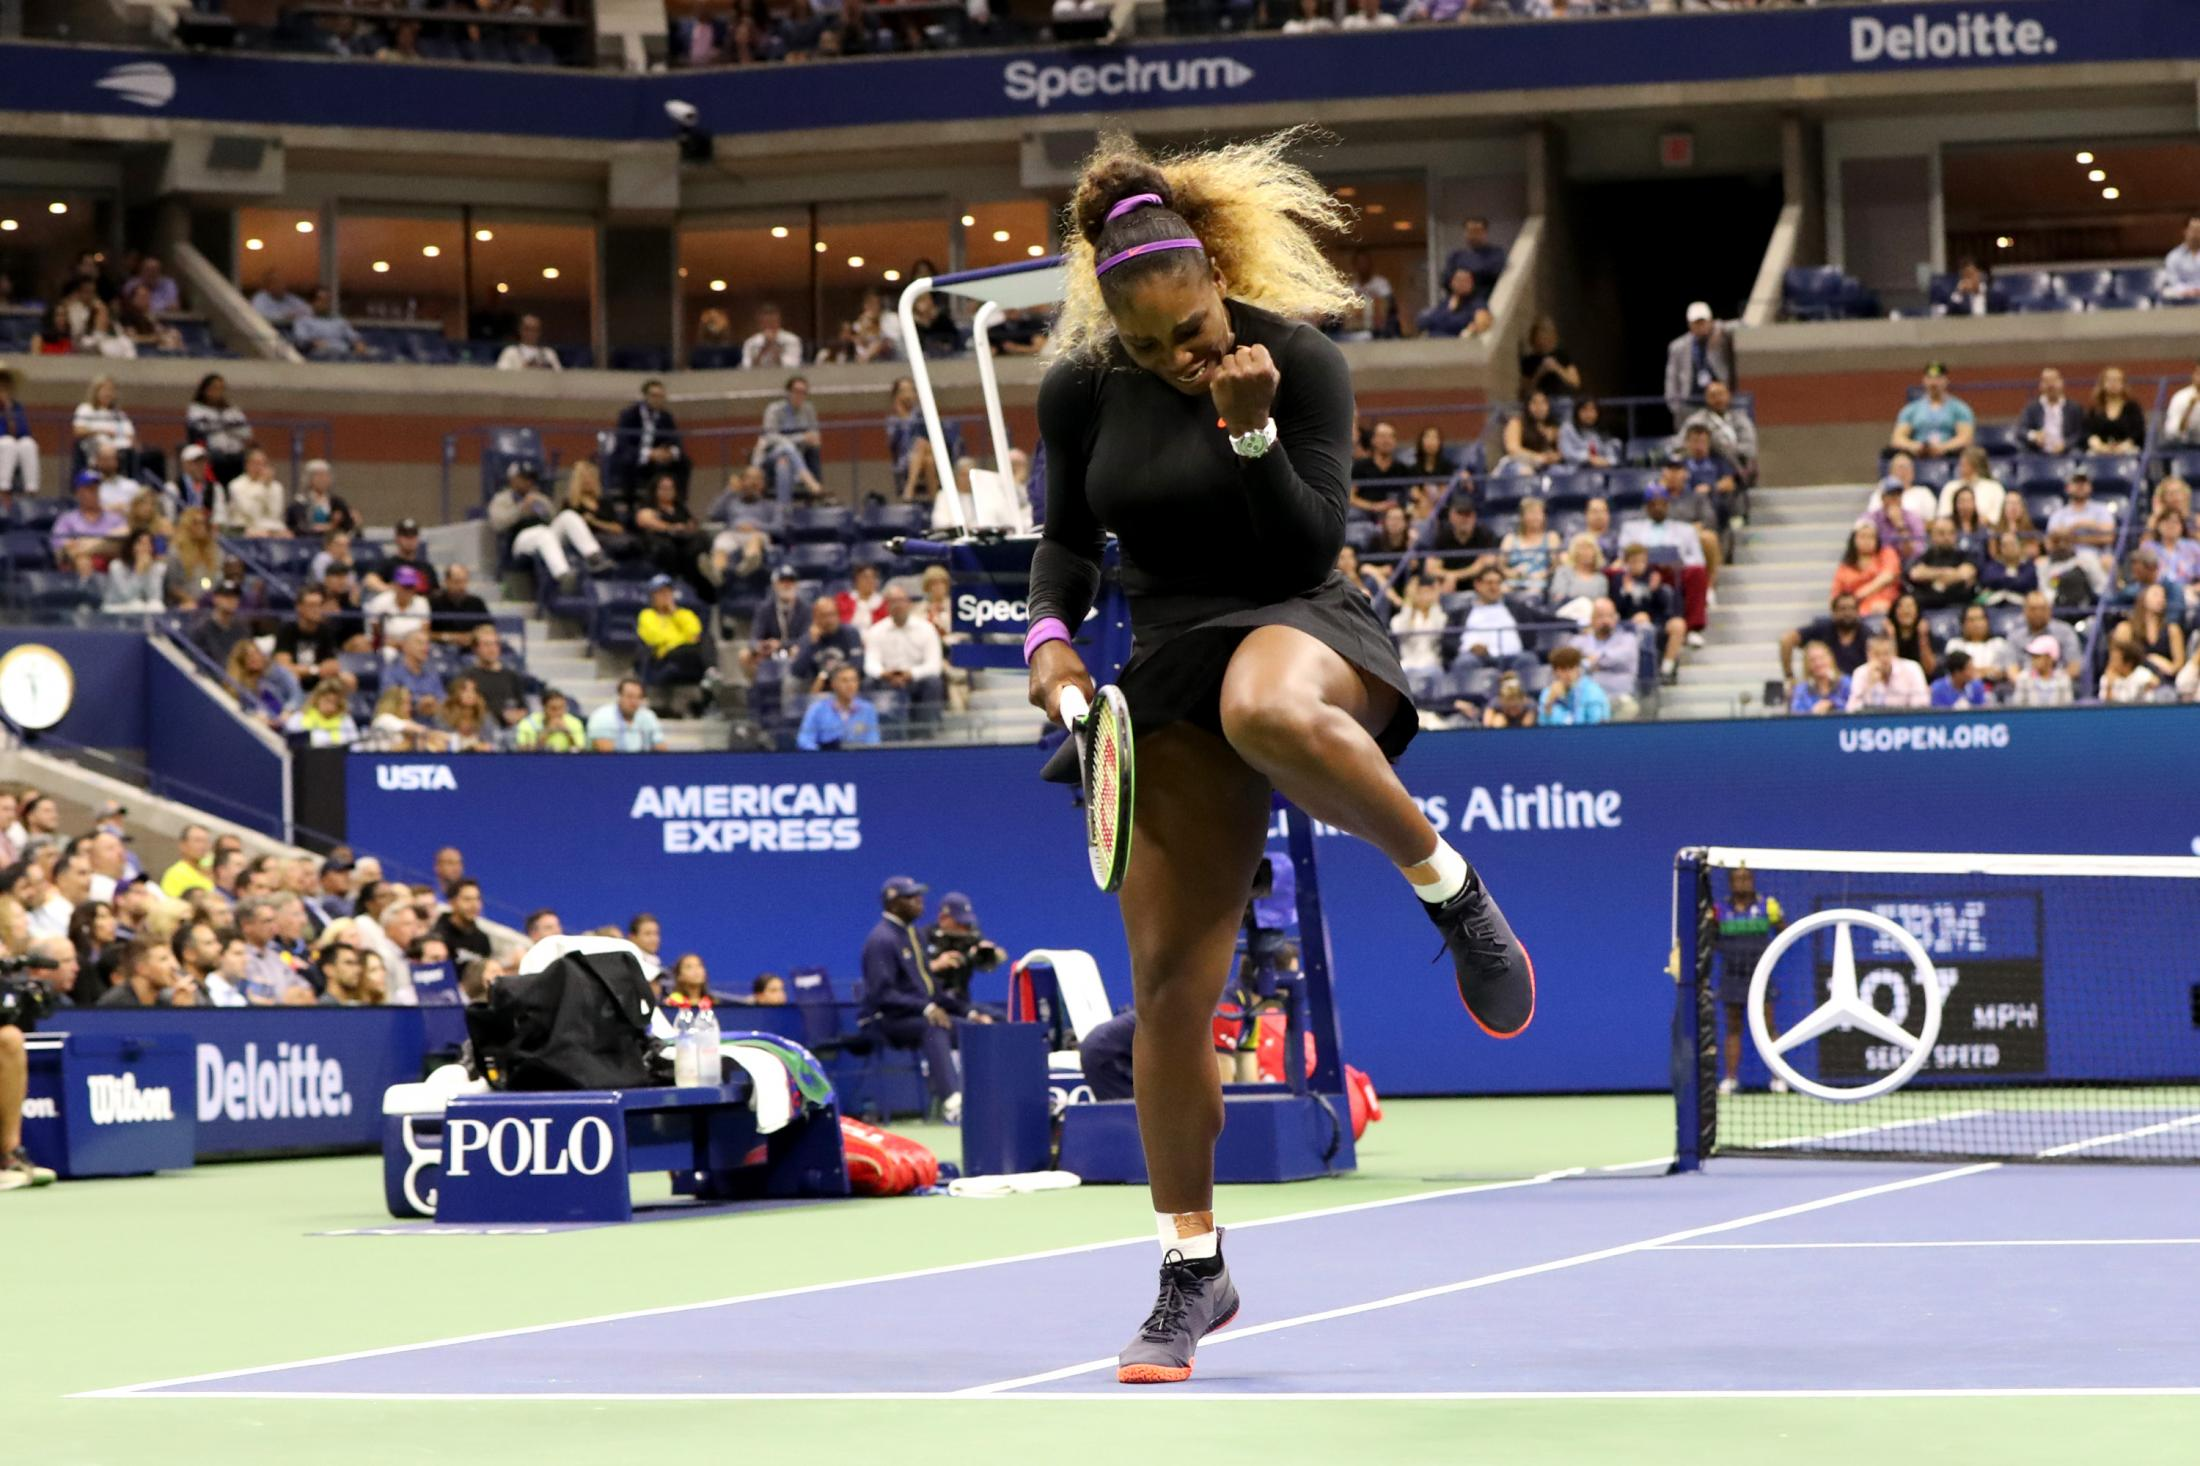 NEW YORK, NEW YORK - AUGUST 28: Serena Williams of the United States reacts during her Women's Singles second round match against Catherine McNally of the United States on day three of the 2019 US Open at the USTA Billie Jean King National Tennis Center on August 28, 2019 in the Flushing neighborhood of the Queens borough of New York City. (Photo by Katharine Lotze/Getty Images)